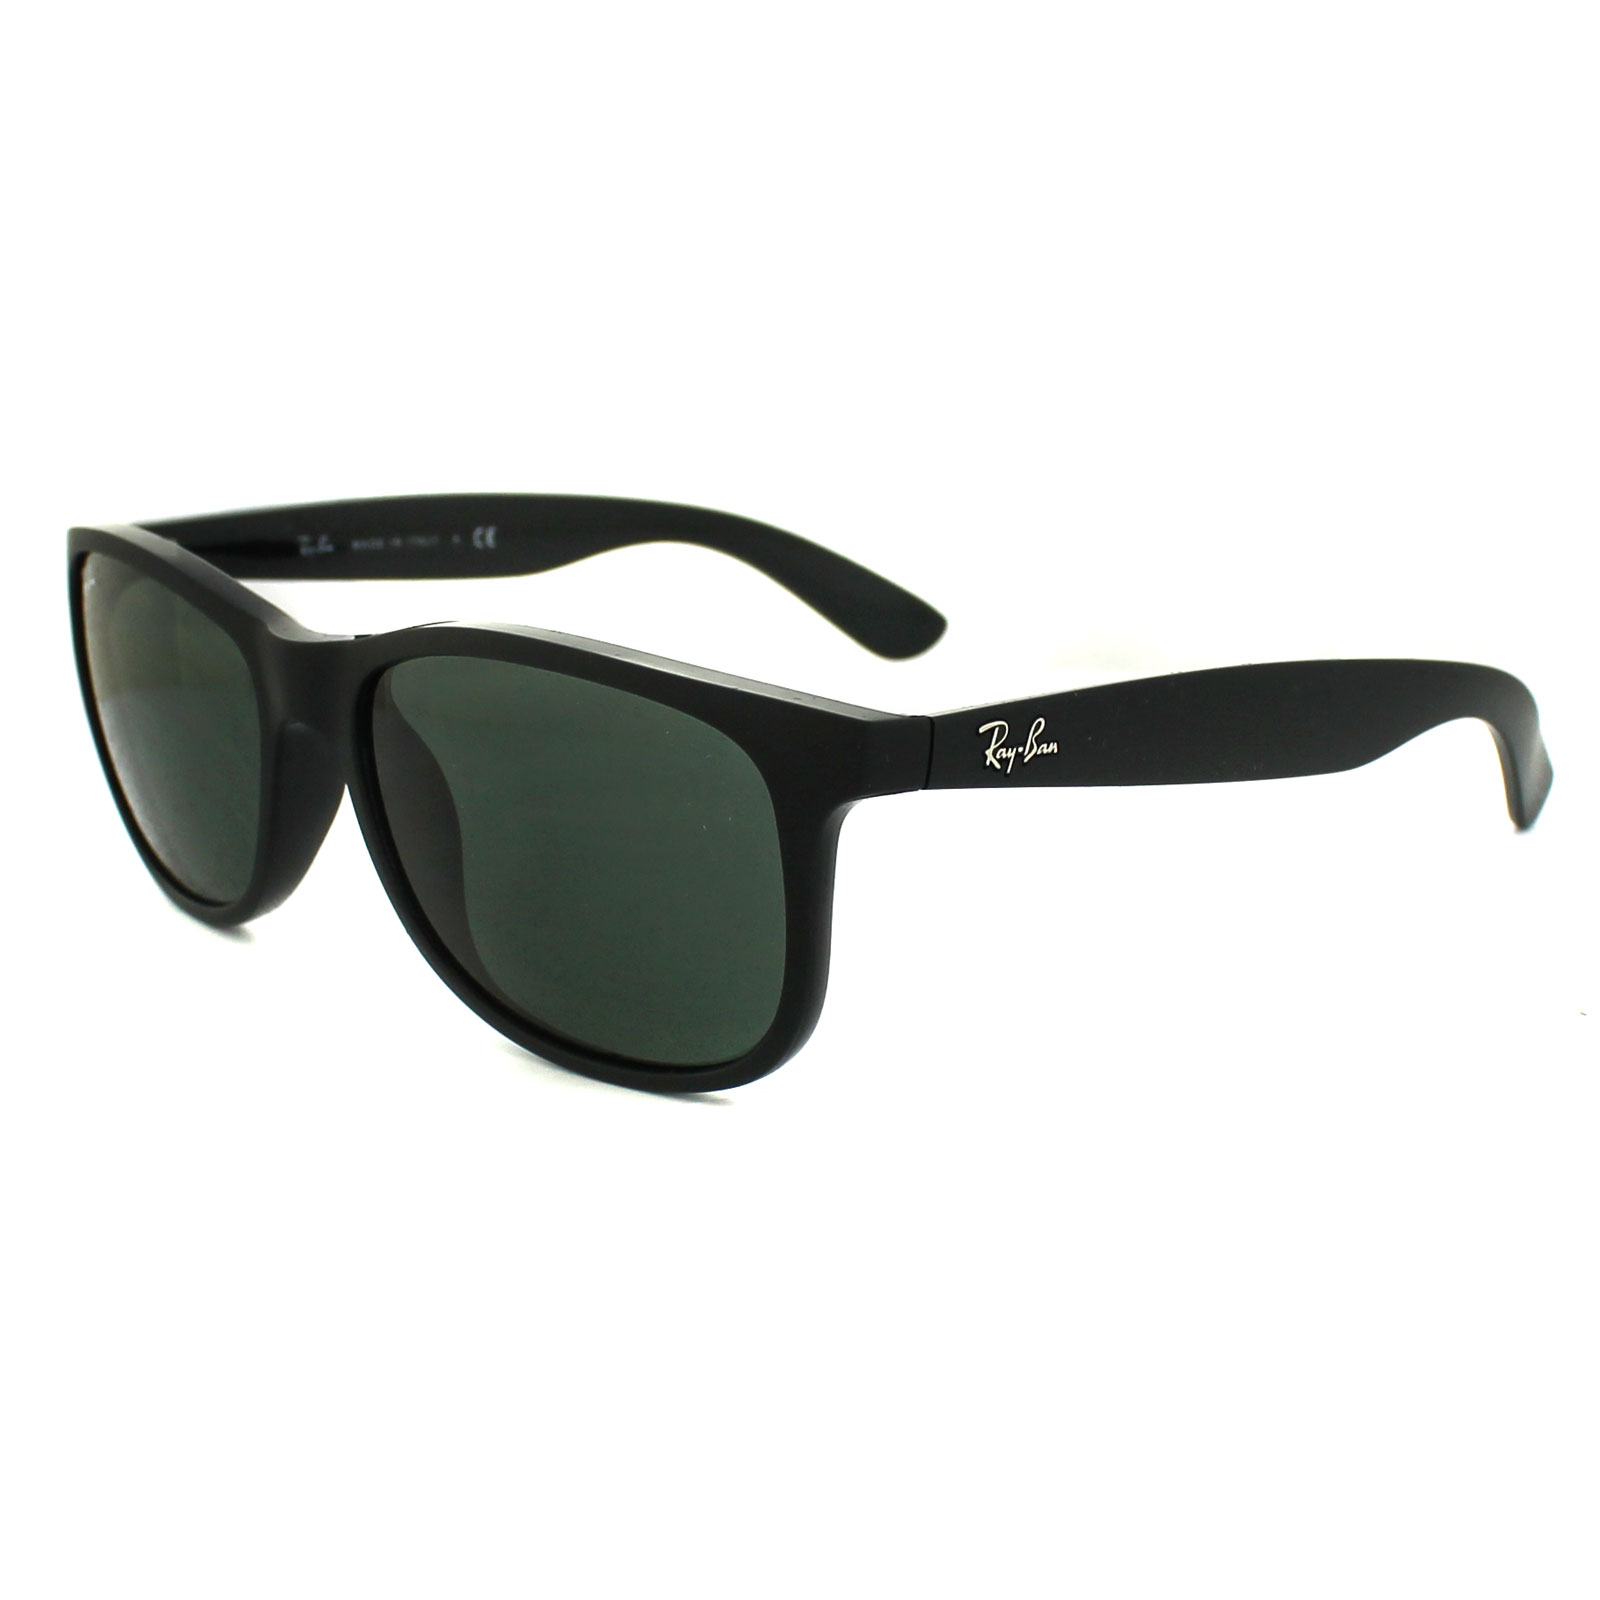 Cheap Ray Ban Andy 4202 Sunglasses Discounted Sunglasses